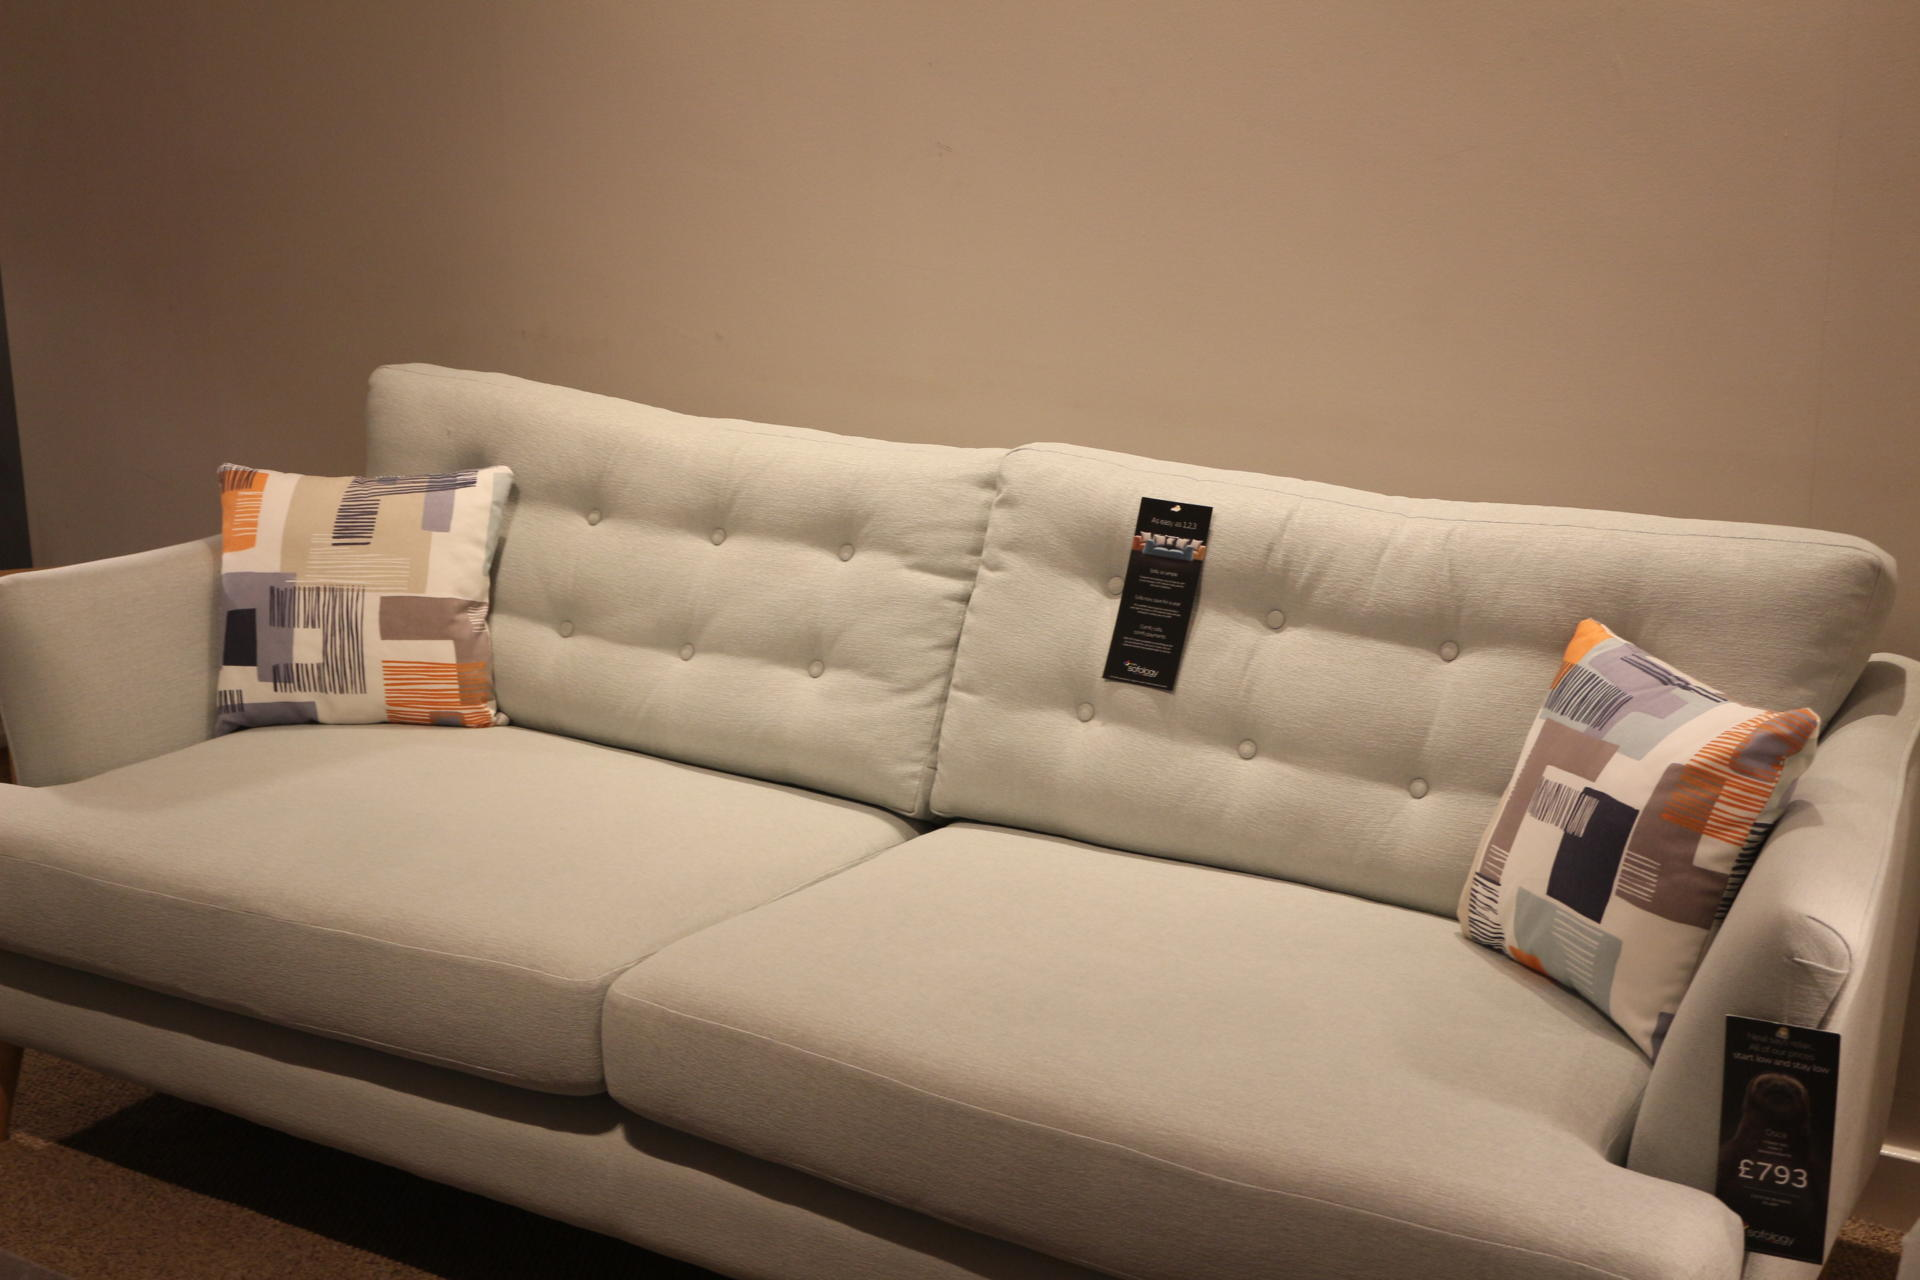 Sofology Yellow Sofa My Sofa Shopping Experience At Sofology White City Manchester